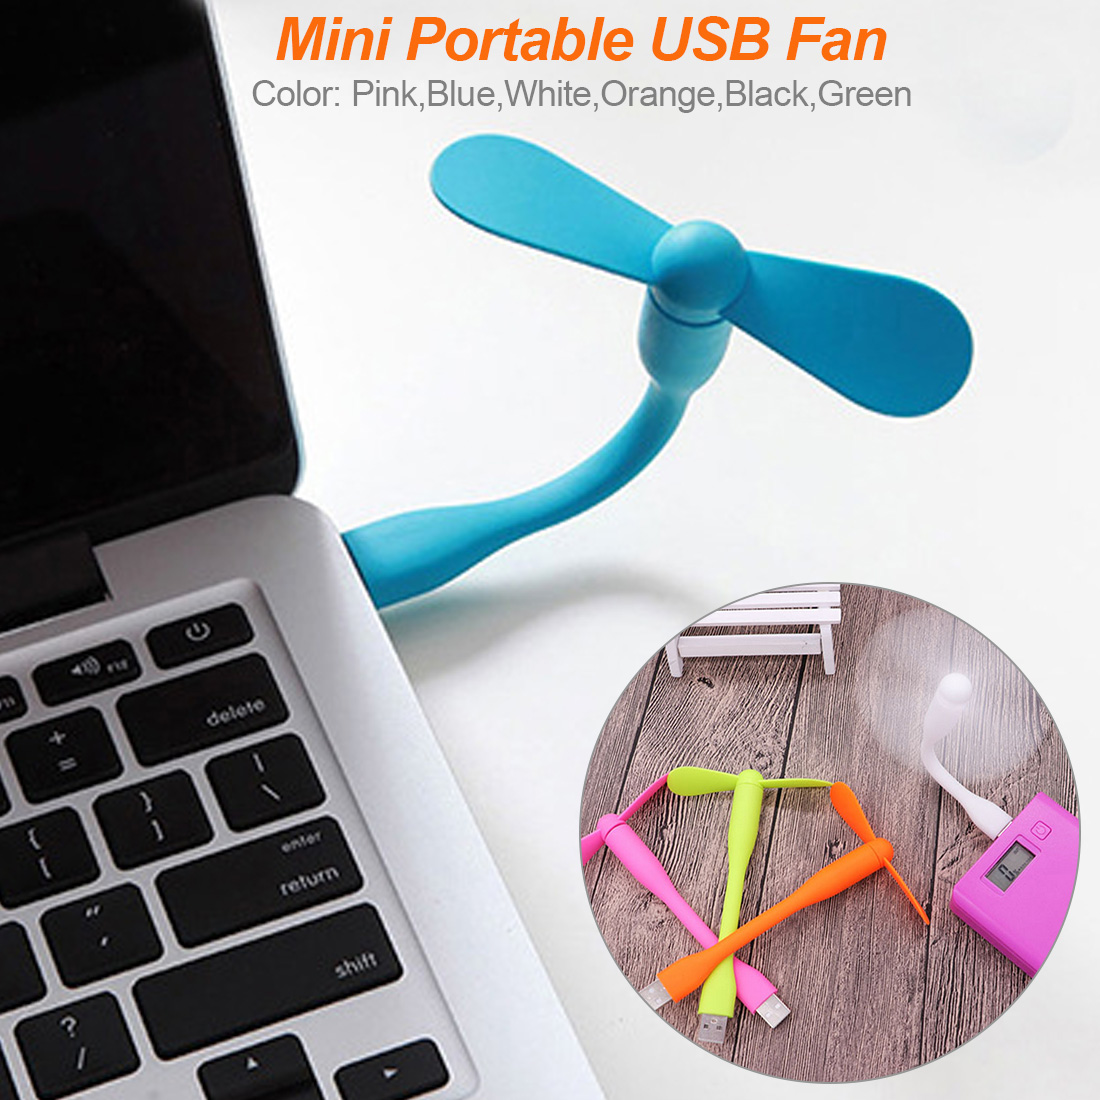 2 en 1 USB ventilateur Flexible Mini USB mis Portable Mini ventilateur USB gadgets pour tablette batterie externe ordinateur amovible USB ventilateur